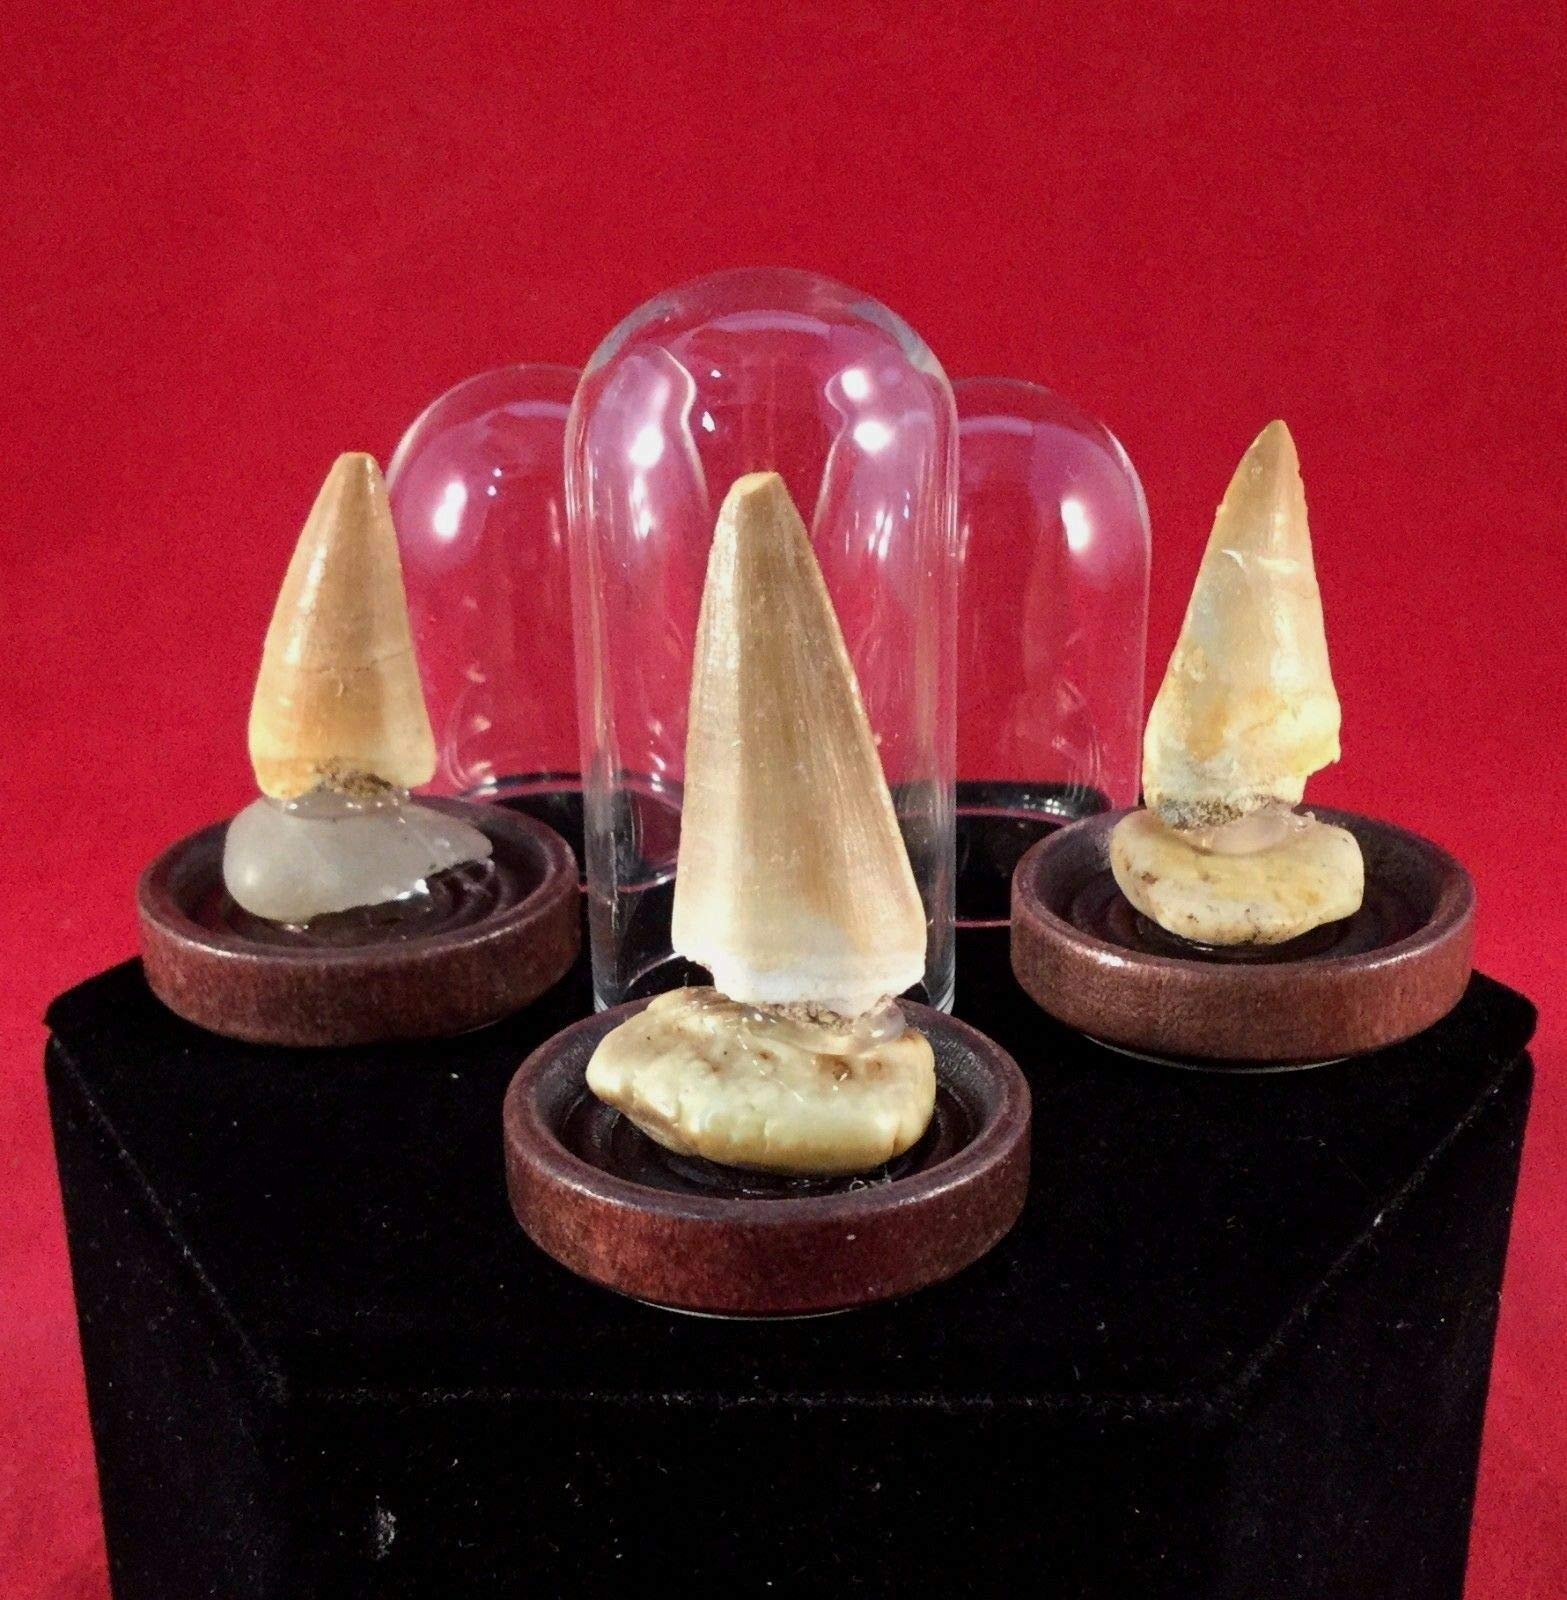 Fossilized Genuine Mosasaurus Tooth Fossil Glass Dome Display Dinosaur Lizard